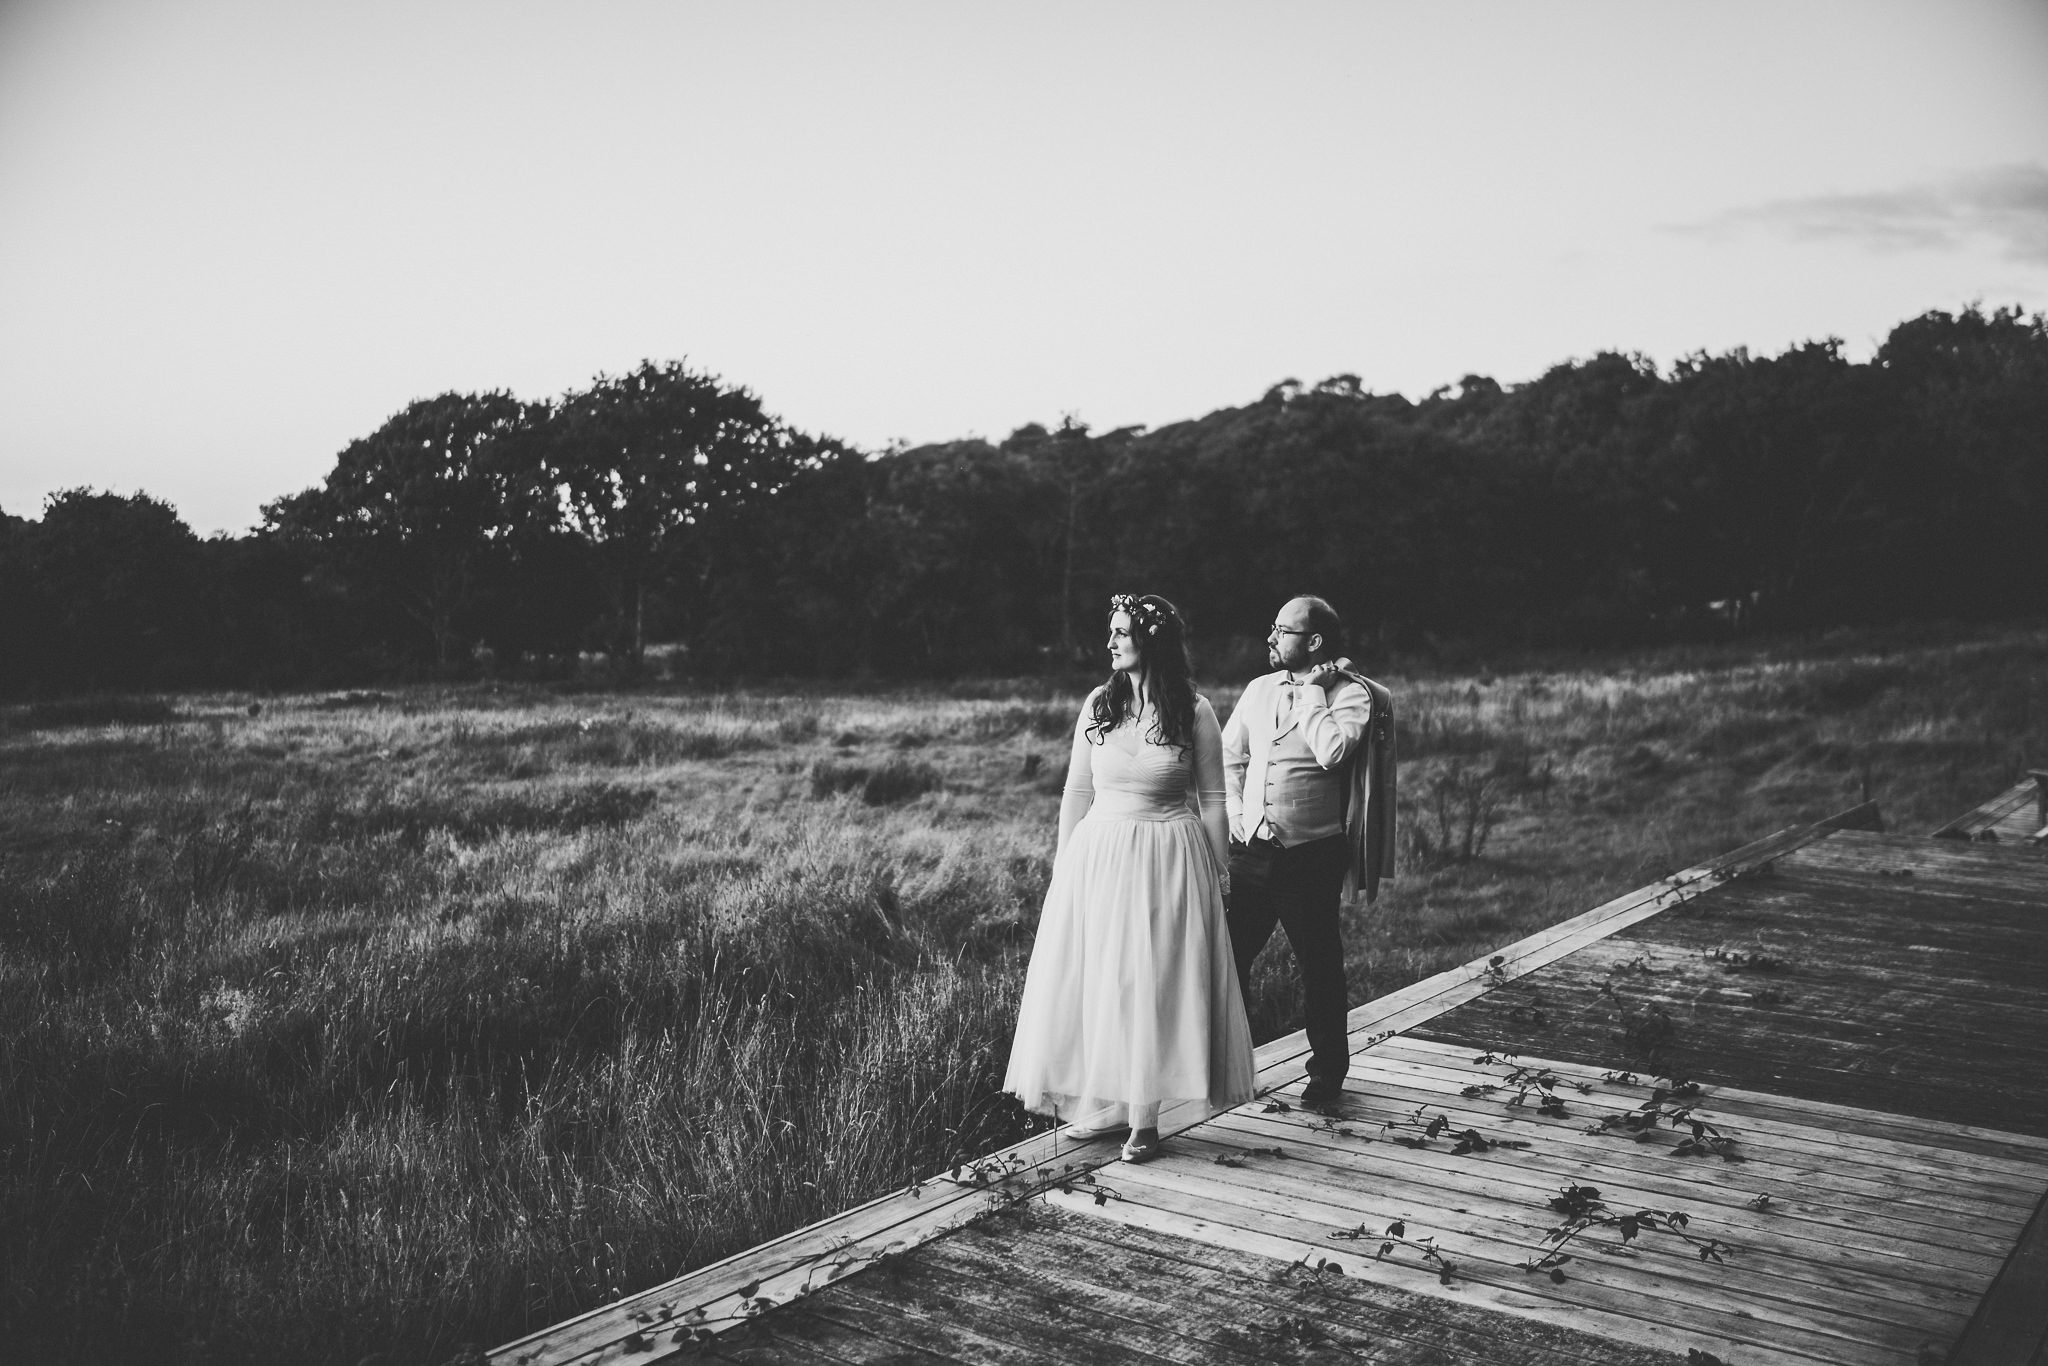 paul-marbrook-Fforest-Wedding-Photographer-90084